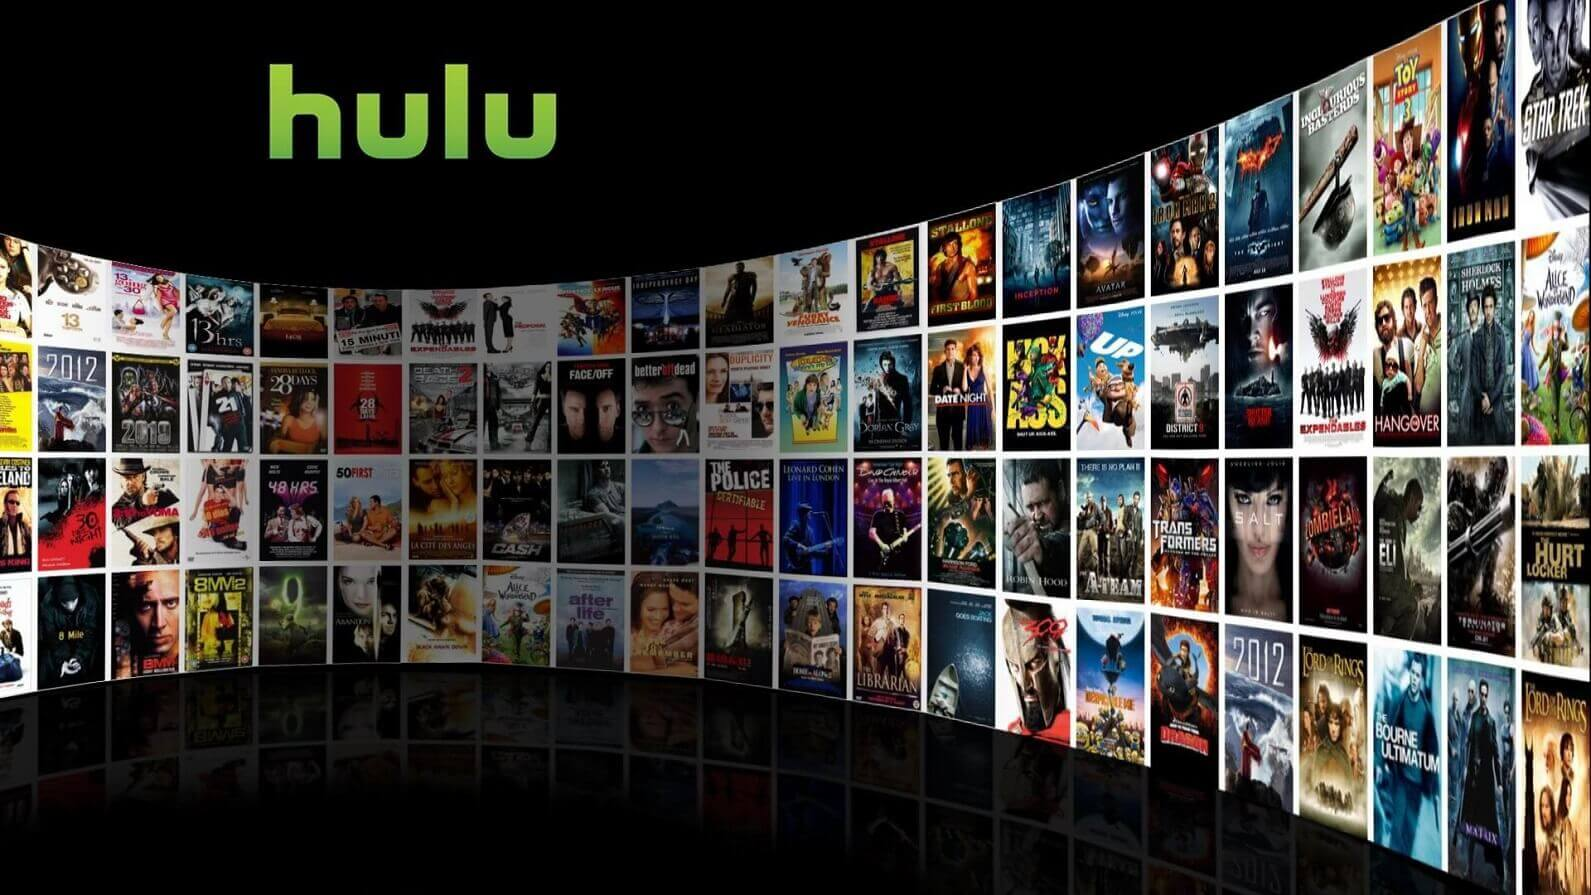 hulu splash screen showing various shows and movies